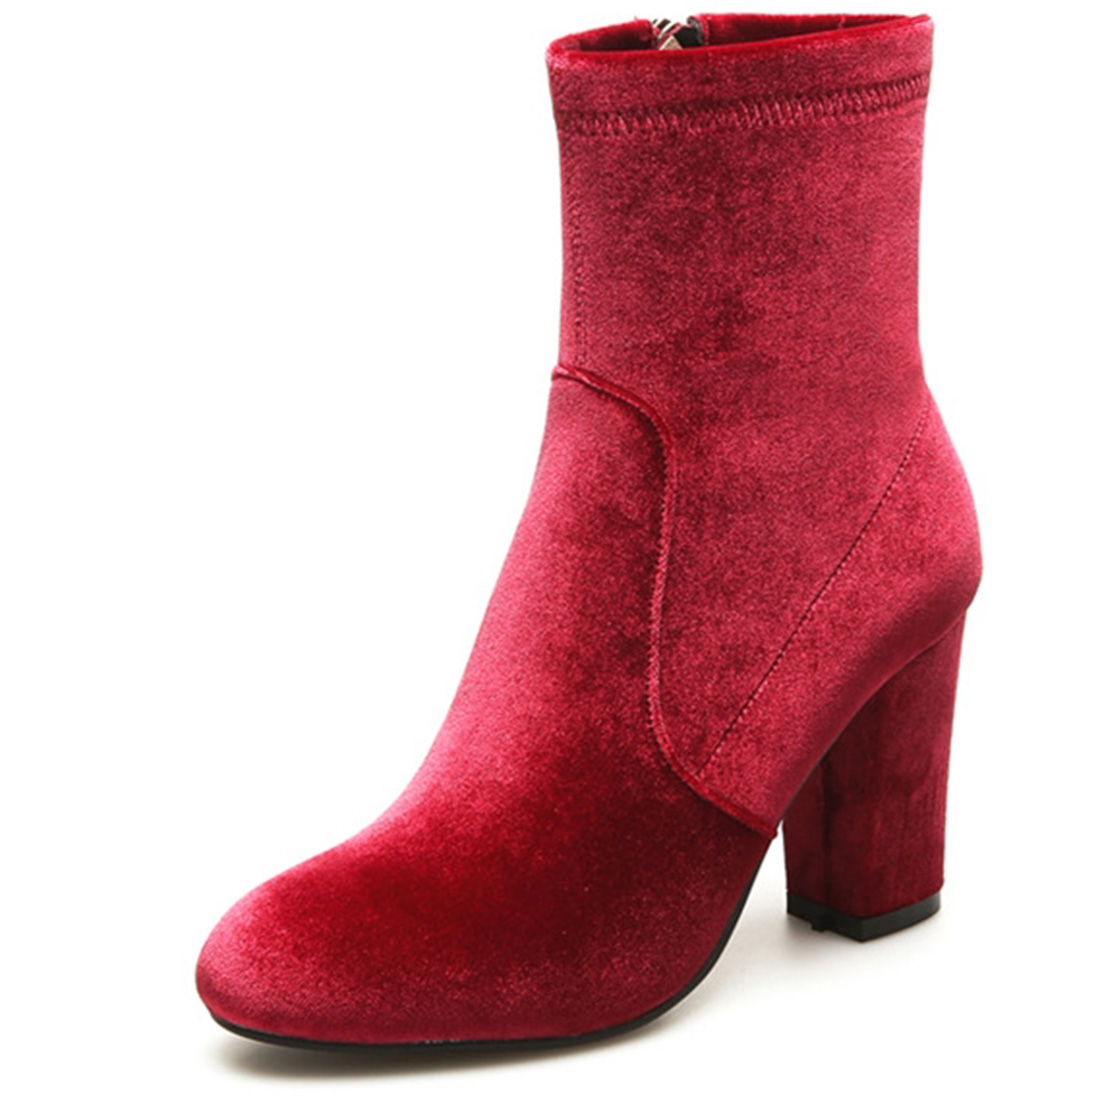 ФОТО High Top Velvet Autumn Chunky Suede Glace Sexy Winter Girls Boots Women Booties Pointy High Quality Warm Shoes